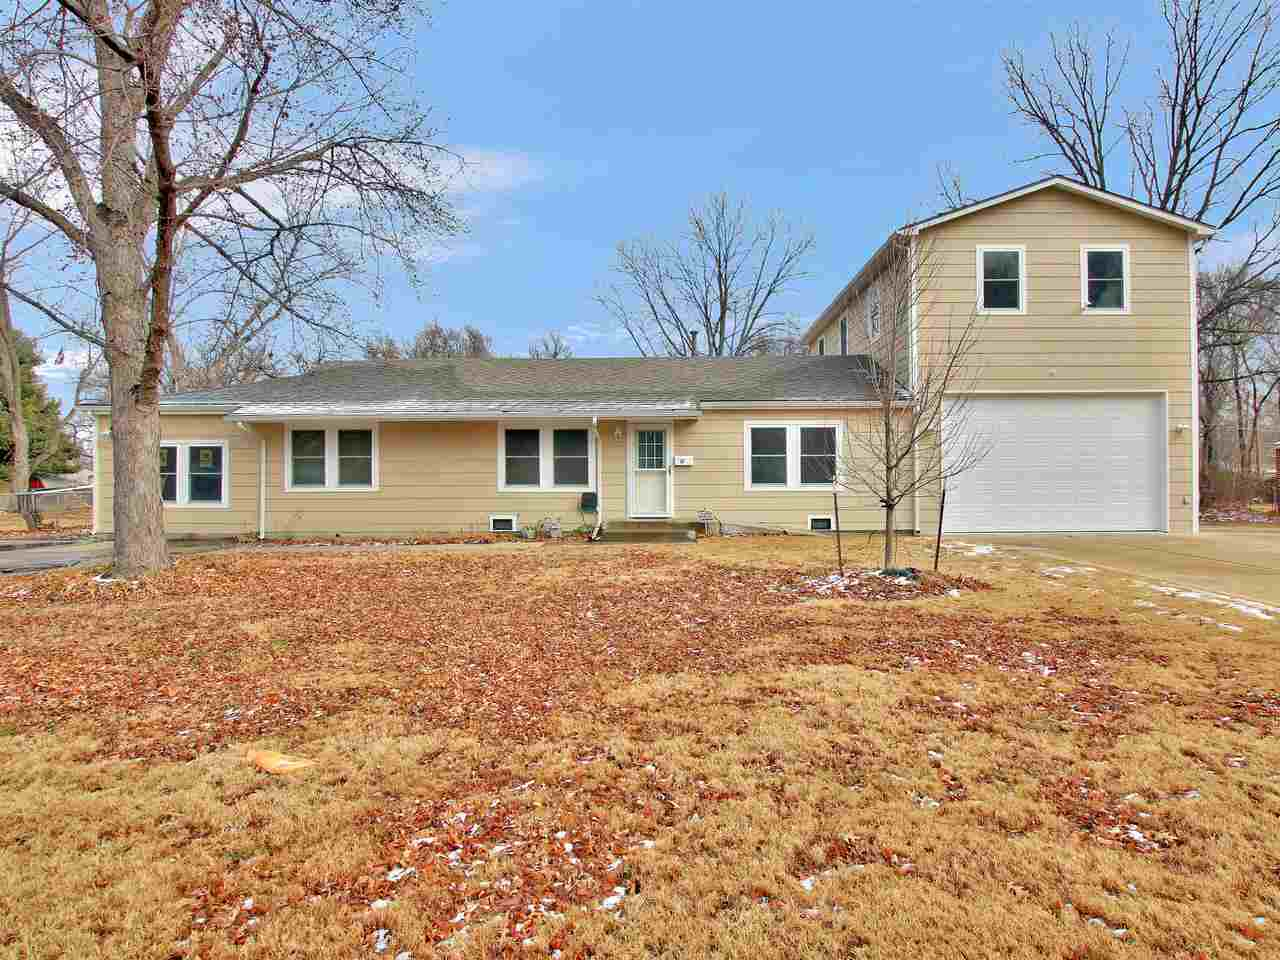 Welcome home to this unique Haysville property, sitting on .46 acres of land. Cozy home with 3 bedrooms, 1 bath. Simple layout. Large, open kitchen-completely remodeled. 10 X 10 storm cellar with interior access. Bonus unfinished room converted from old garage-could be a 2nd family room, play room, bedroom; lots of possibility, just needs creativity and finishing.   Where this property shines is the tandem garage with approximately 800 square feet of potential living space above. The garage is perfect for the perpetual builder/tinkerer. With 200 amps of power. Full bathroom inside. Garage boasts double accessibility for vehicle entry, with a paved drive path from front to back. The unfinished space above has roughed in water and sewer with electricity and a private entry on the back of the garage. Once this space is finished it could be used for a extra family staying, college students, mother-in-law suite, or rentable space. Lots of options!  Backyard is full fenced with a large concrete patio perfect for family gatherings, with opportunity to house an above-ground pool. Also in the backyard is a large shed, with 100 amps of power, could be a she-shed!  Neighborhood is quiet, elementary and middle school is nearby within walking distance.   Within the last 5 years the home has been remodeled with light fixtures, roof, air conditioner, furnace, windows, and siding.   Contact me to see this special home!